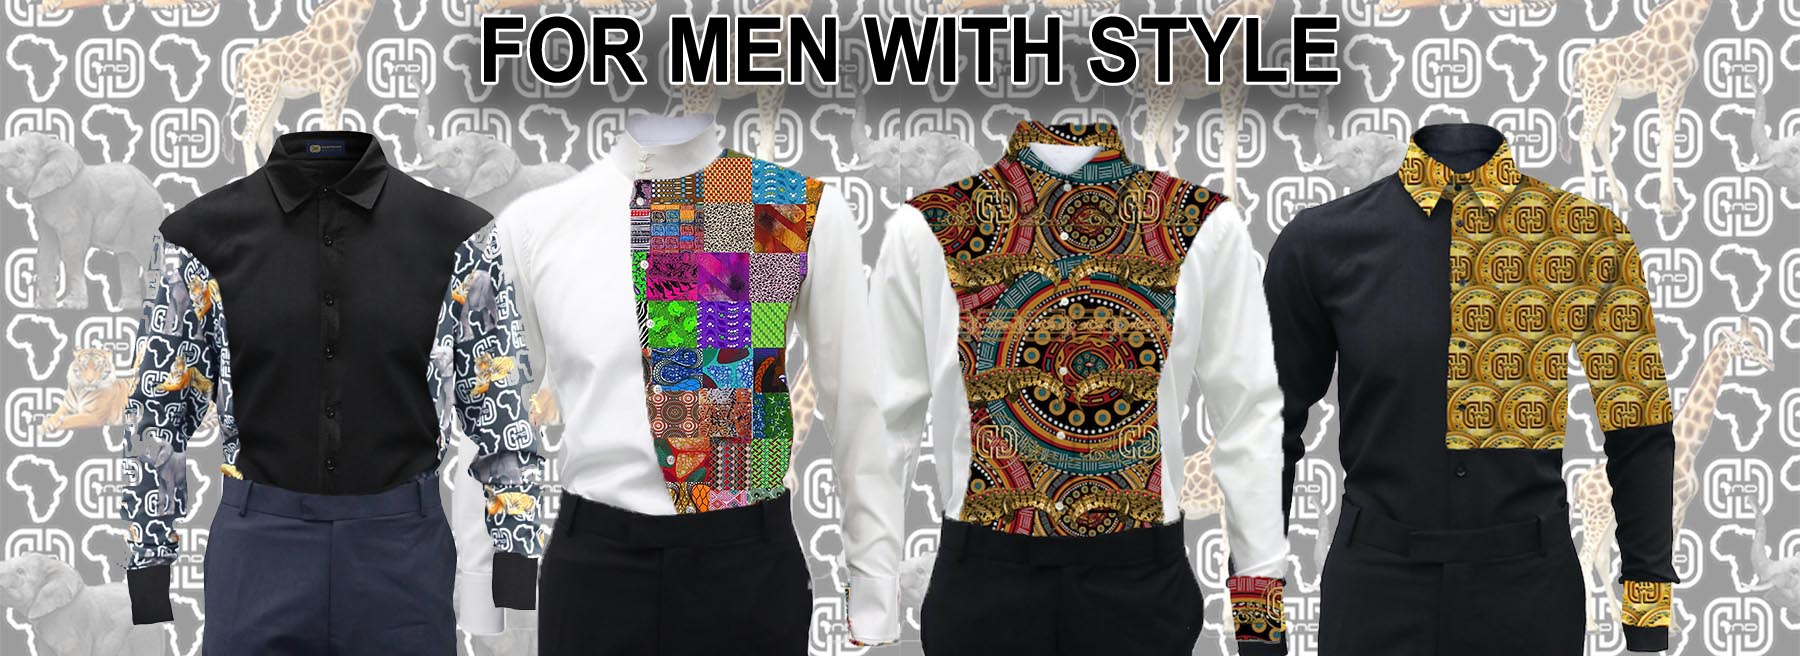 Shirts for Casual and Formal Wear   Men's African Shirts   MT